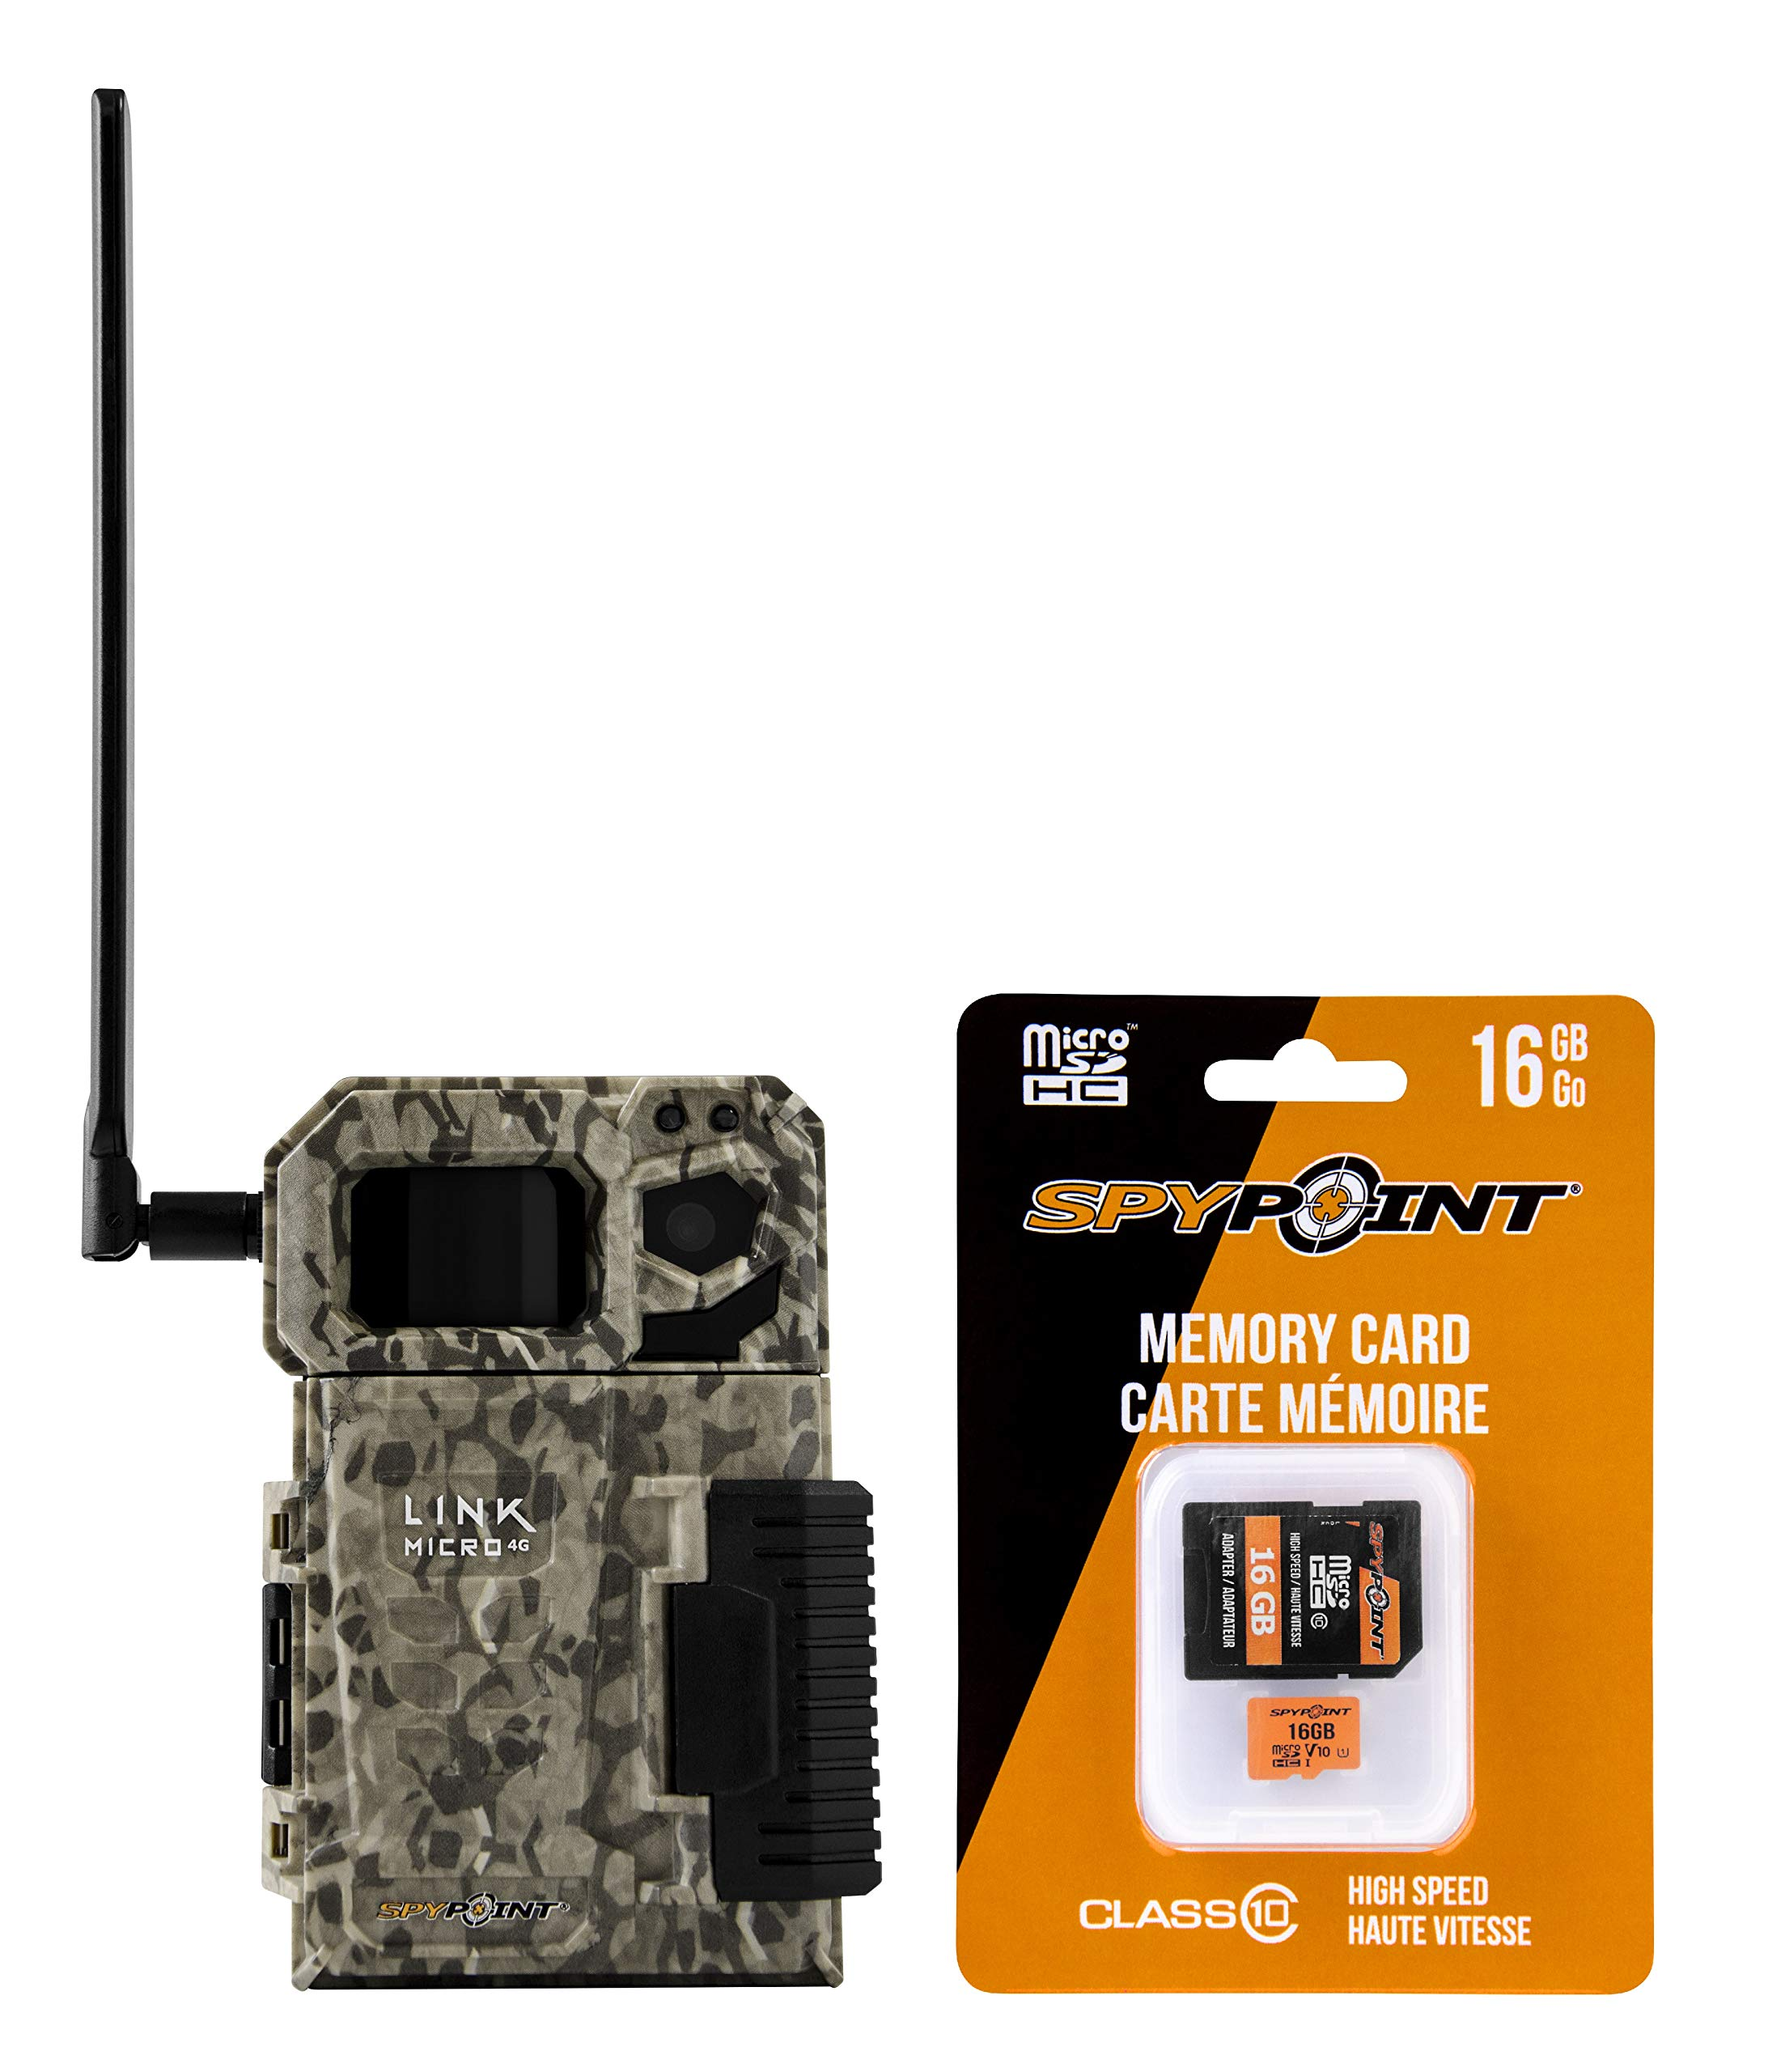 SPYPOINT Link Micro with 16GB MicroSD (Smallest on The Market!) Wireless/Cell Trail Camera, 4 Power LEDs, Fast 4G Photo Transmission w/Preactivated SIM, Fully Configurable via App (Link-Micro-V) by SPYPOINT